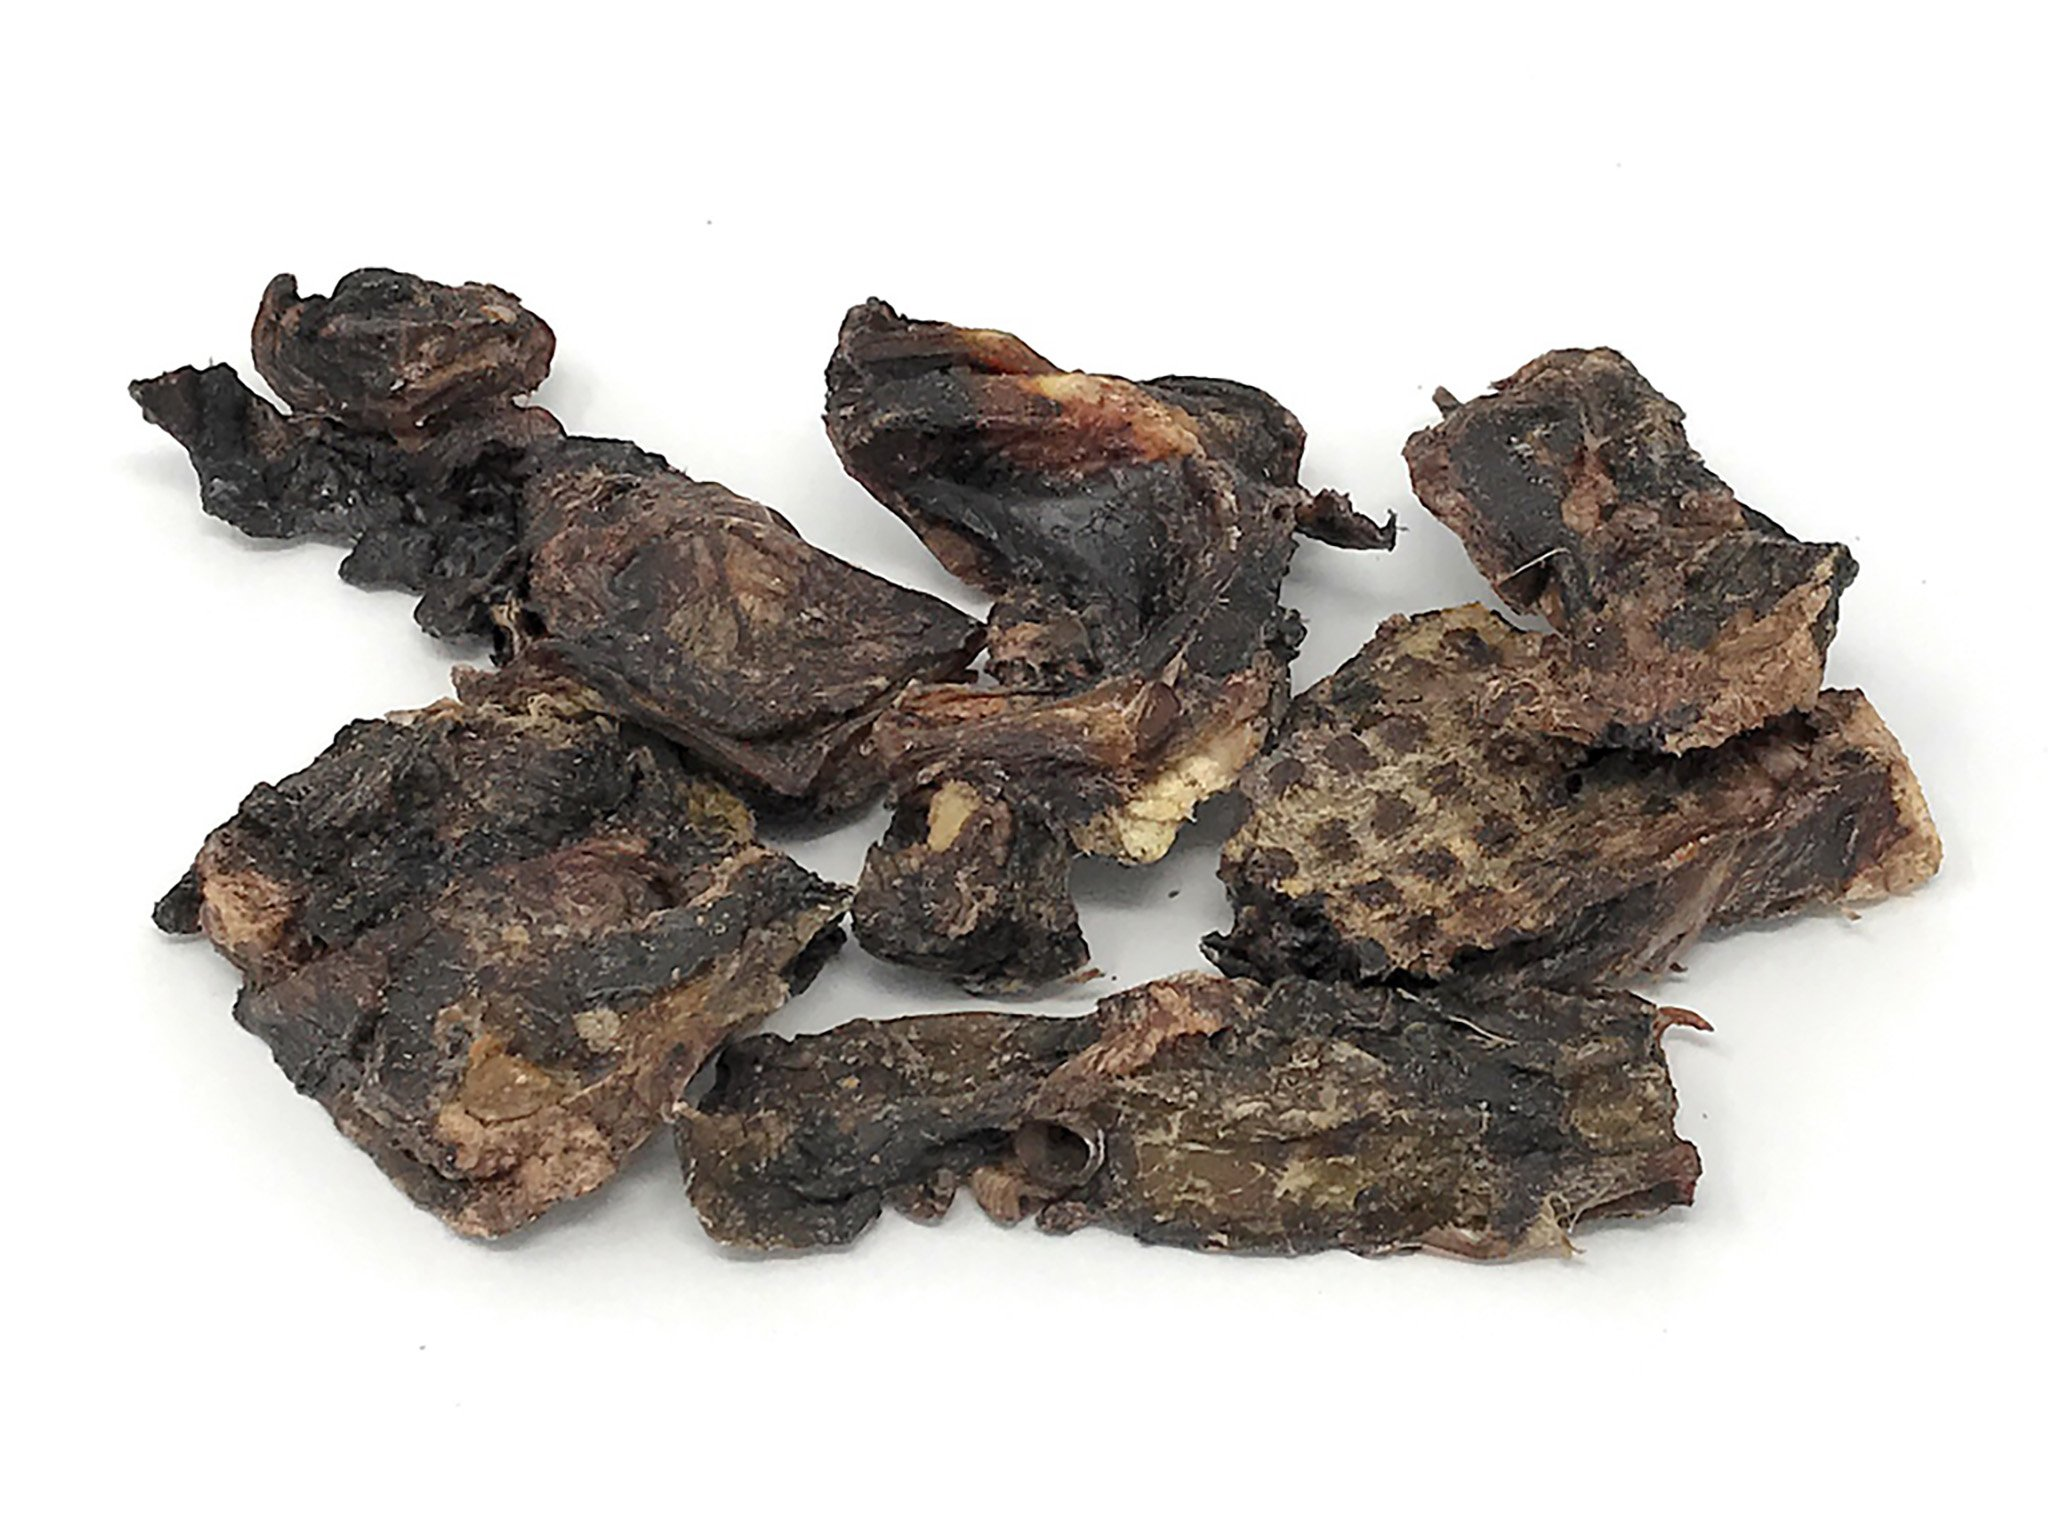 Venison Jerky Treats for Dogs by CountryPet Naturals (6 Ounces) - Air Dried, Healthy Snack and Training Reward - 100% Natural, Grain Free, Gluten Free, Single Ingredient - Made in New Zealand by CountryPet Naturals (Image #3)